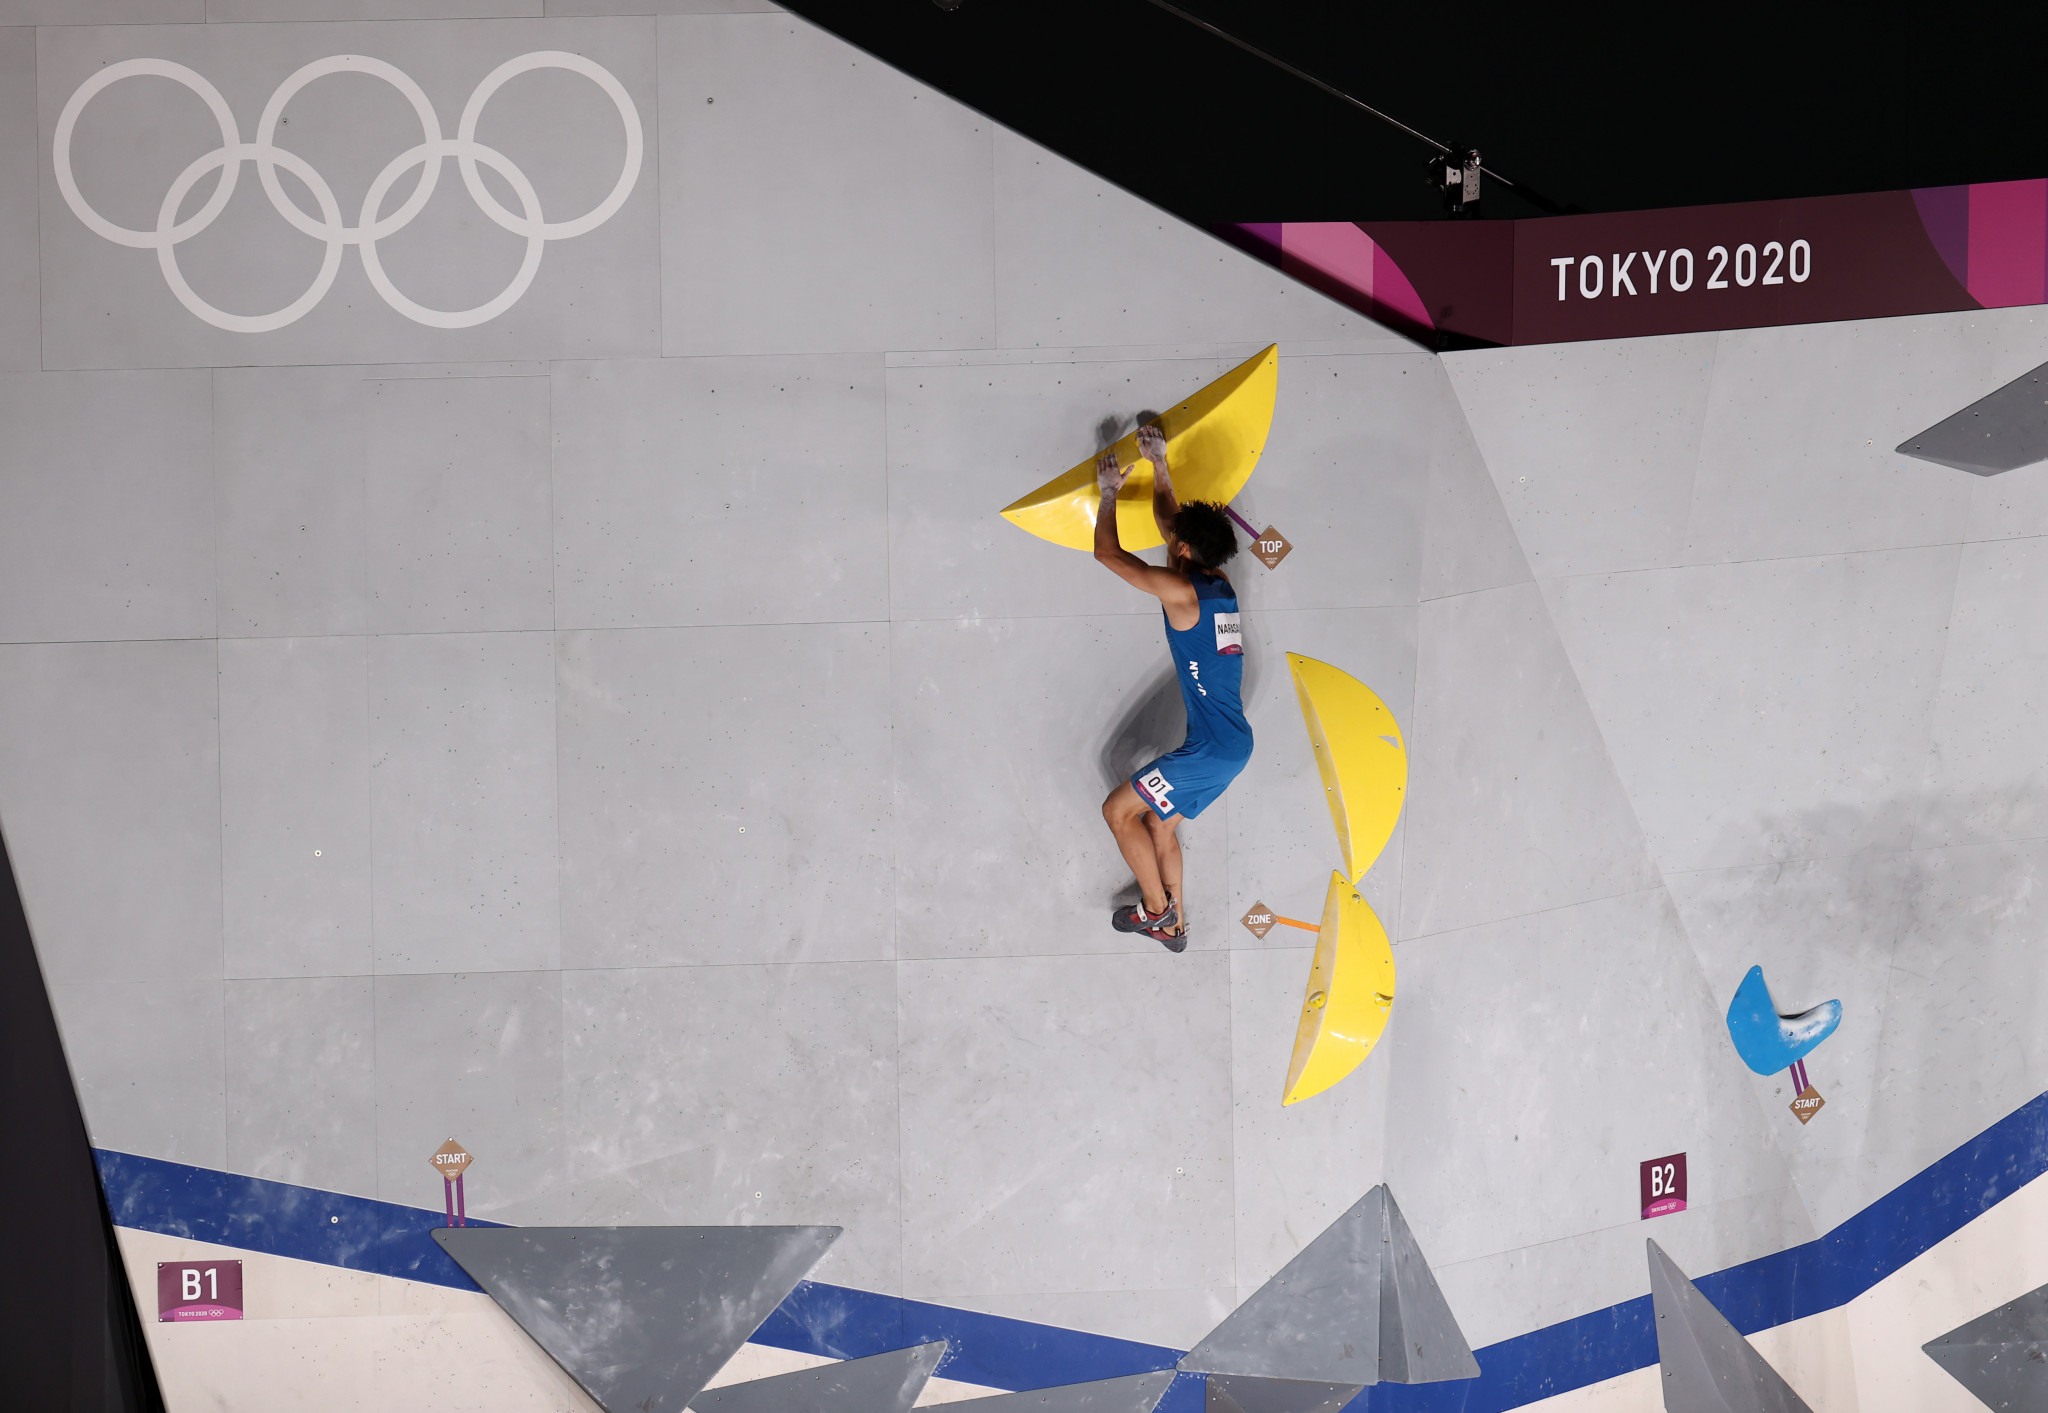 Sport climbing made its Olympic debut at Tokyo 2020 ©Getty Images